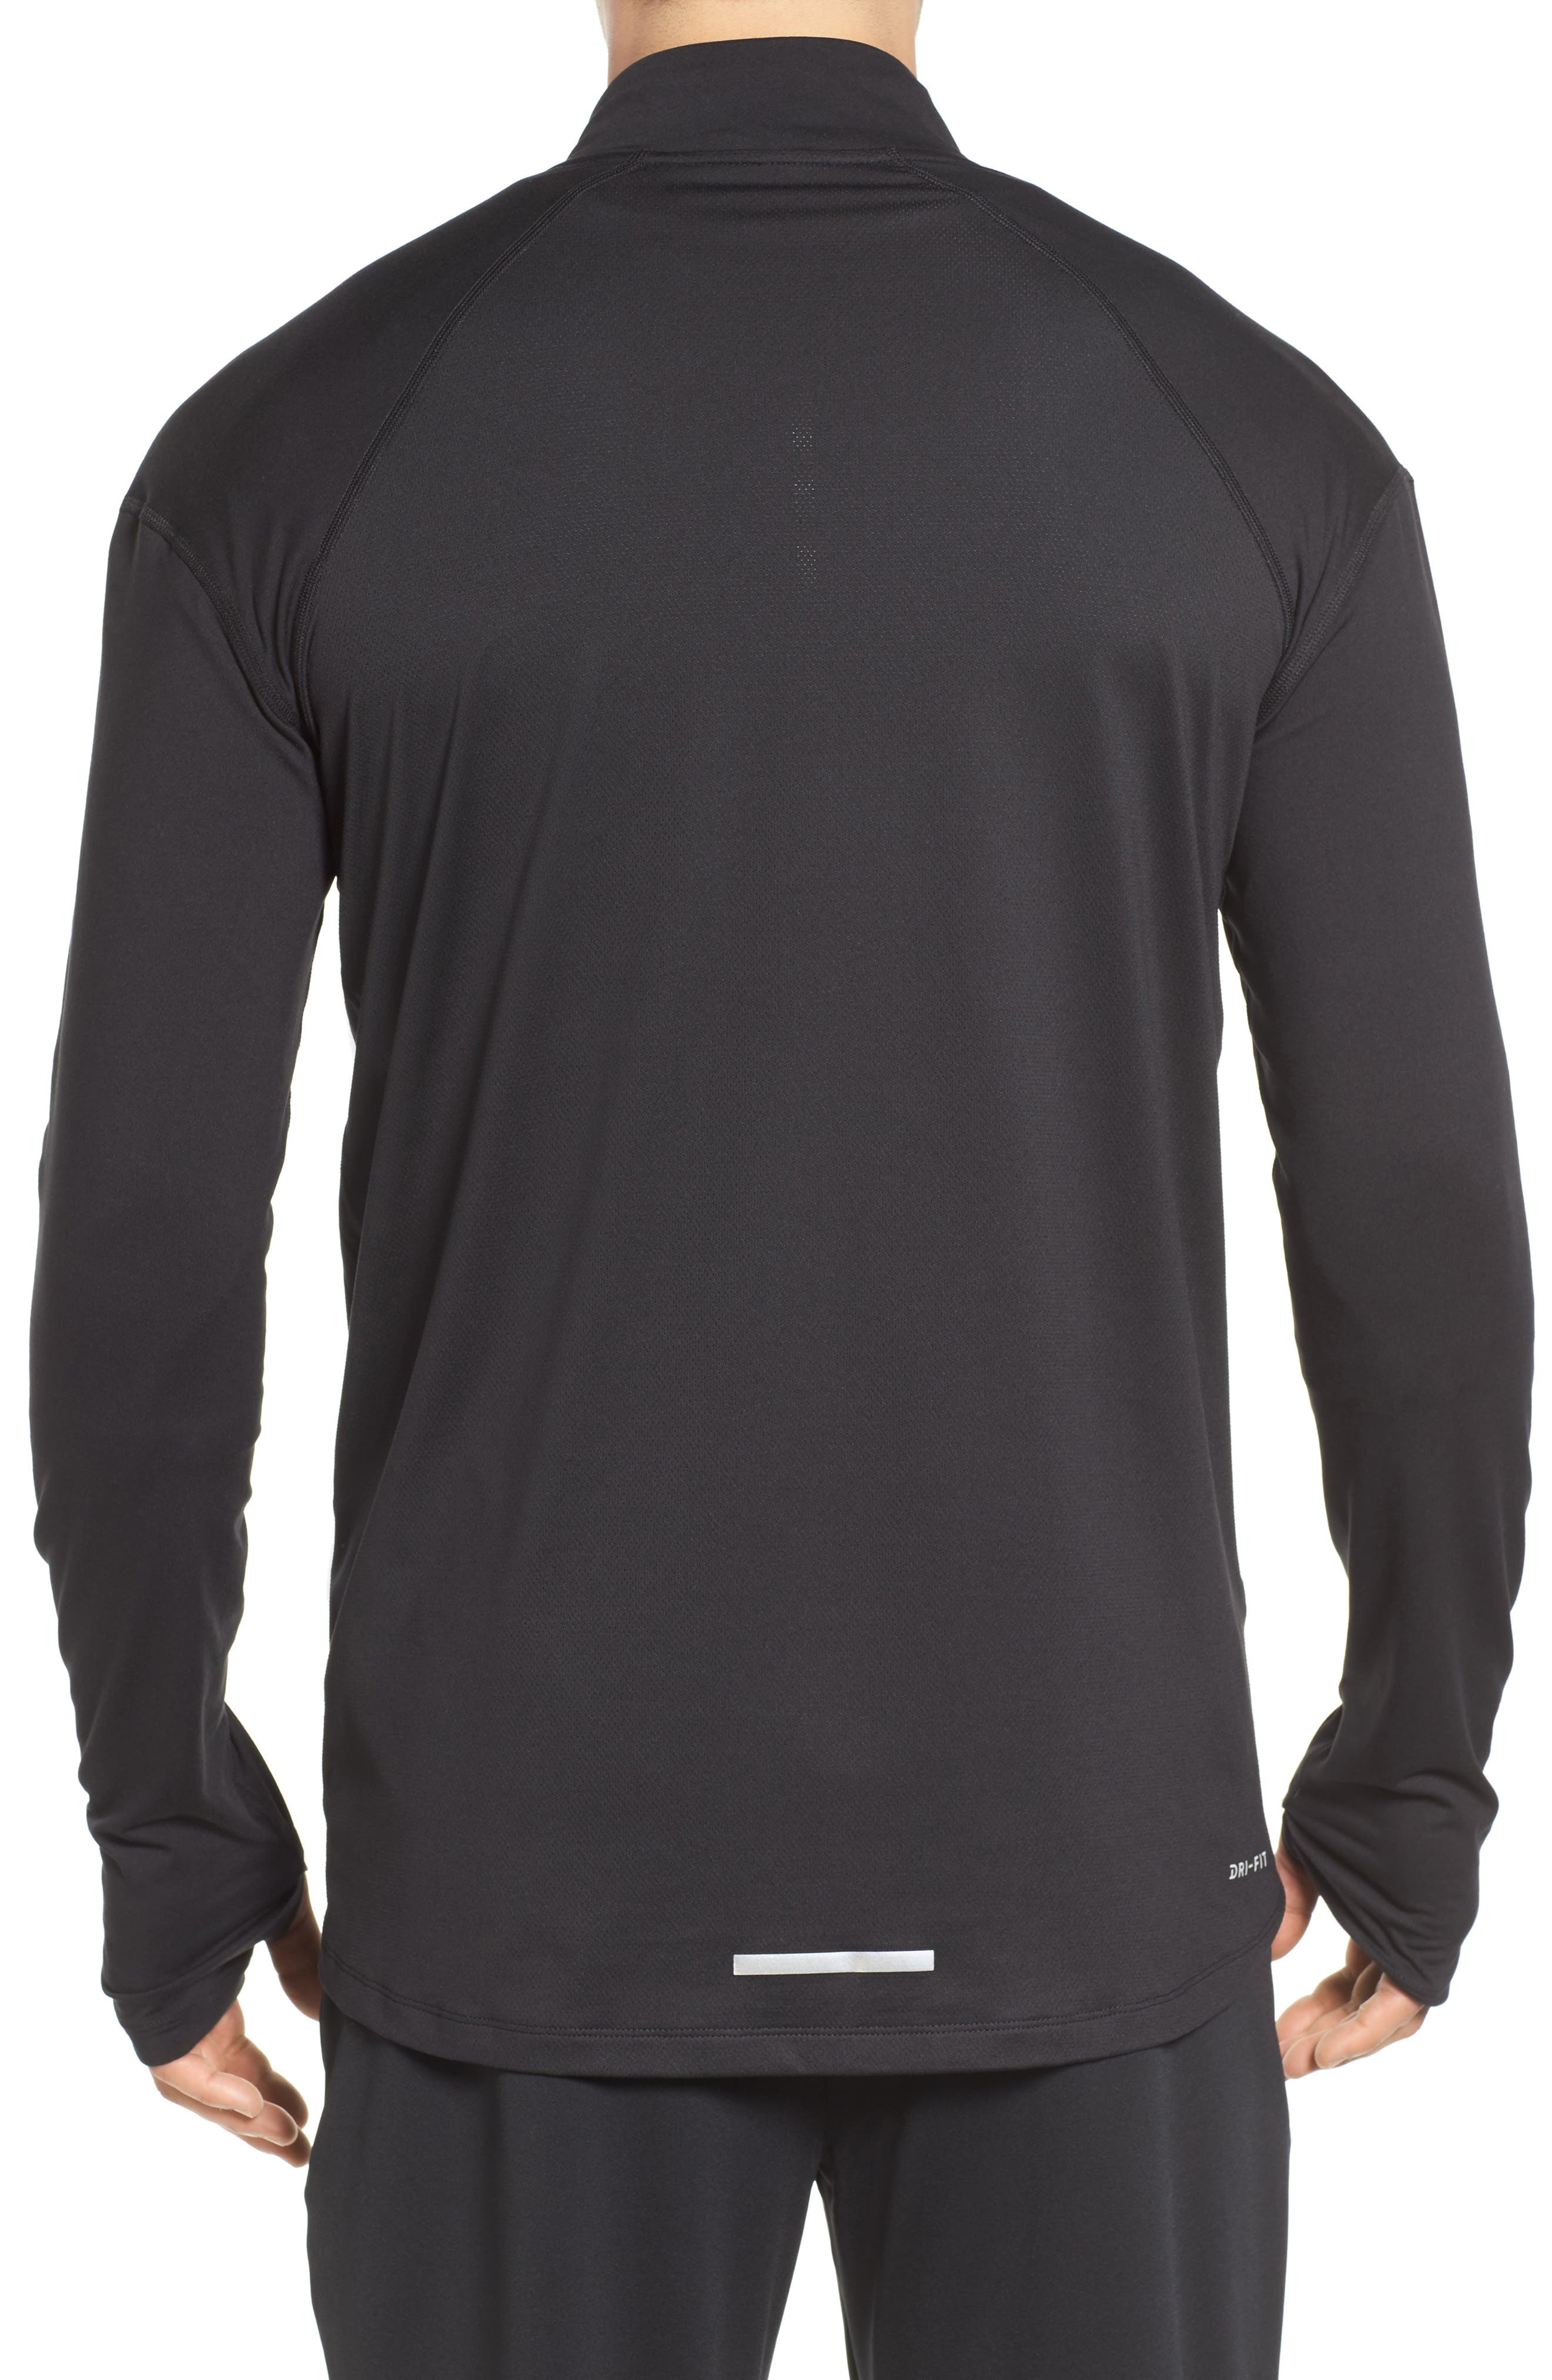 Dry Element Running Top,                             Alternate thumbnail 2, color,                             BLACK